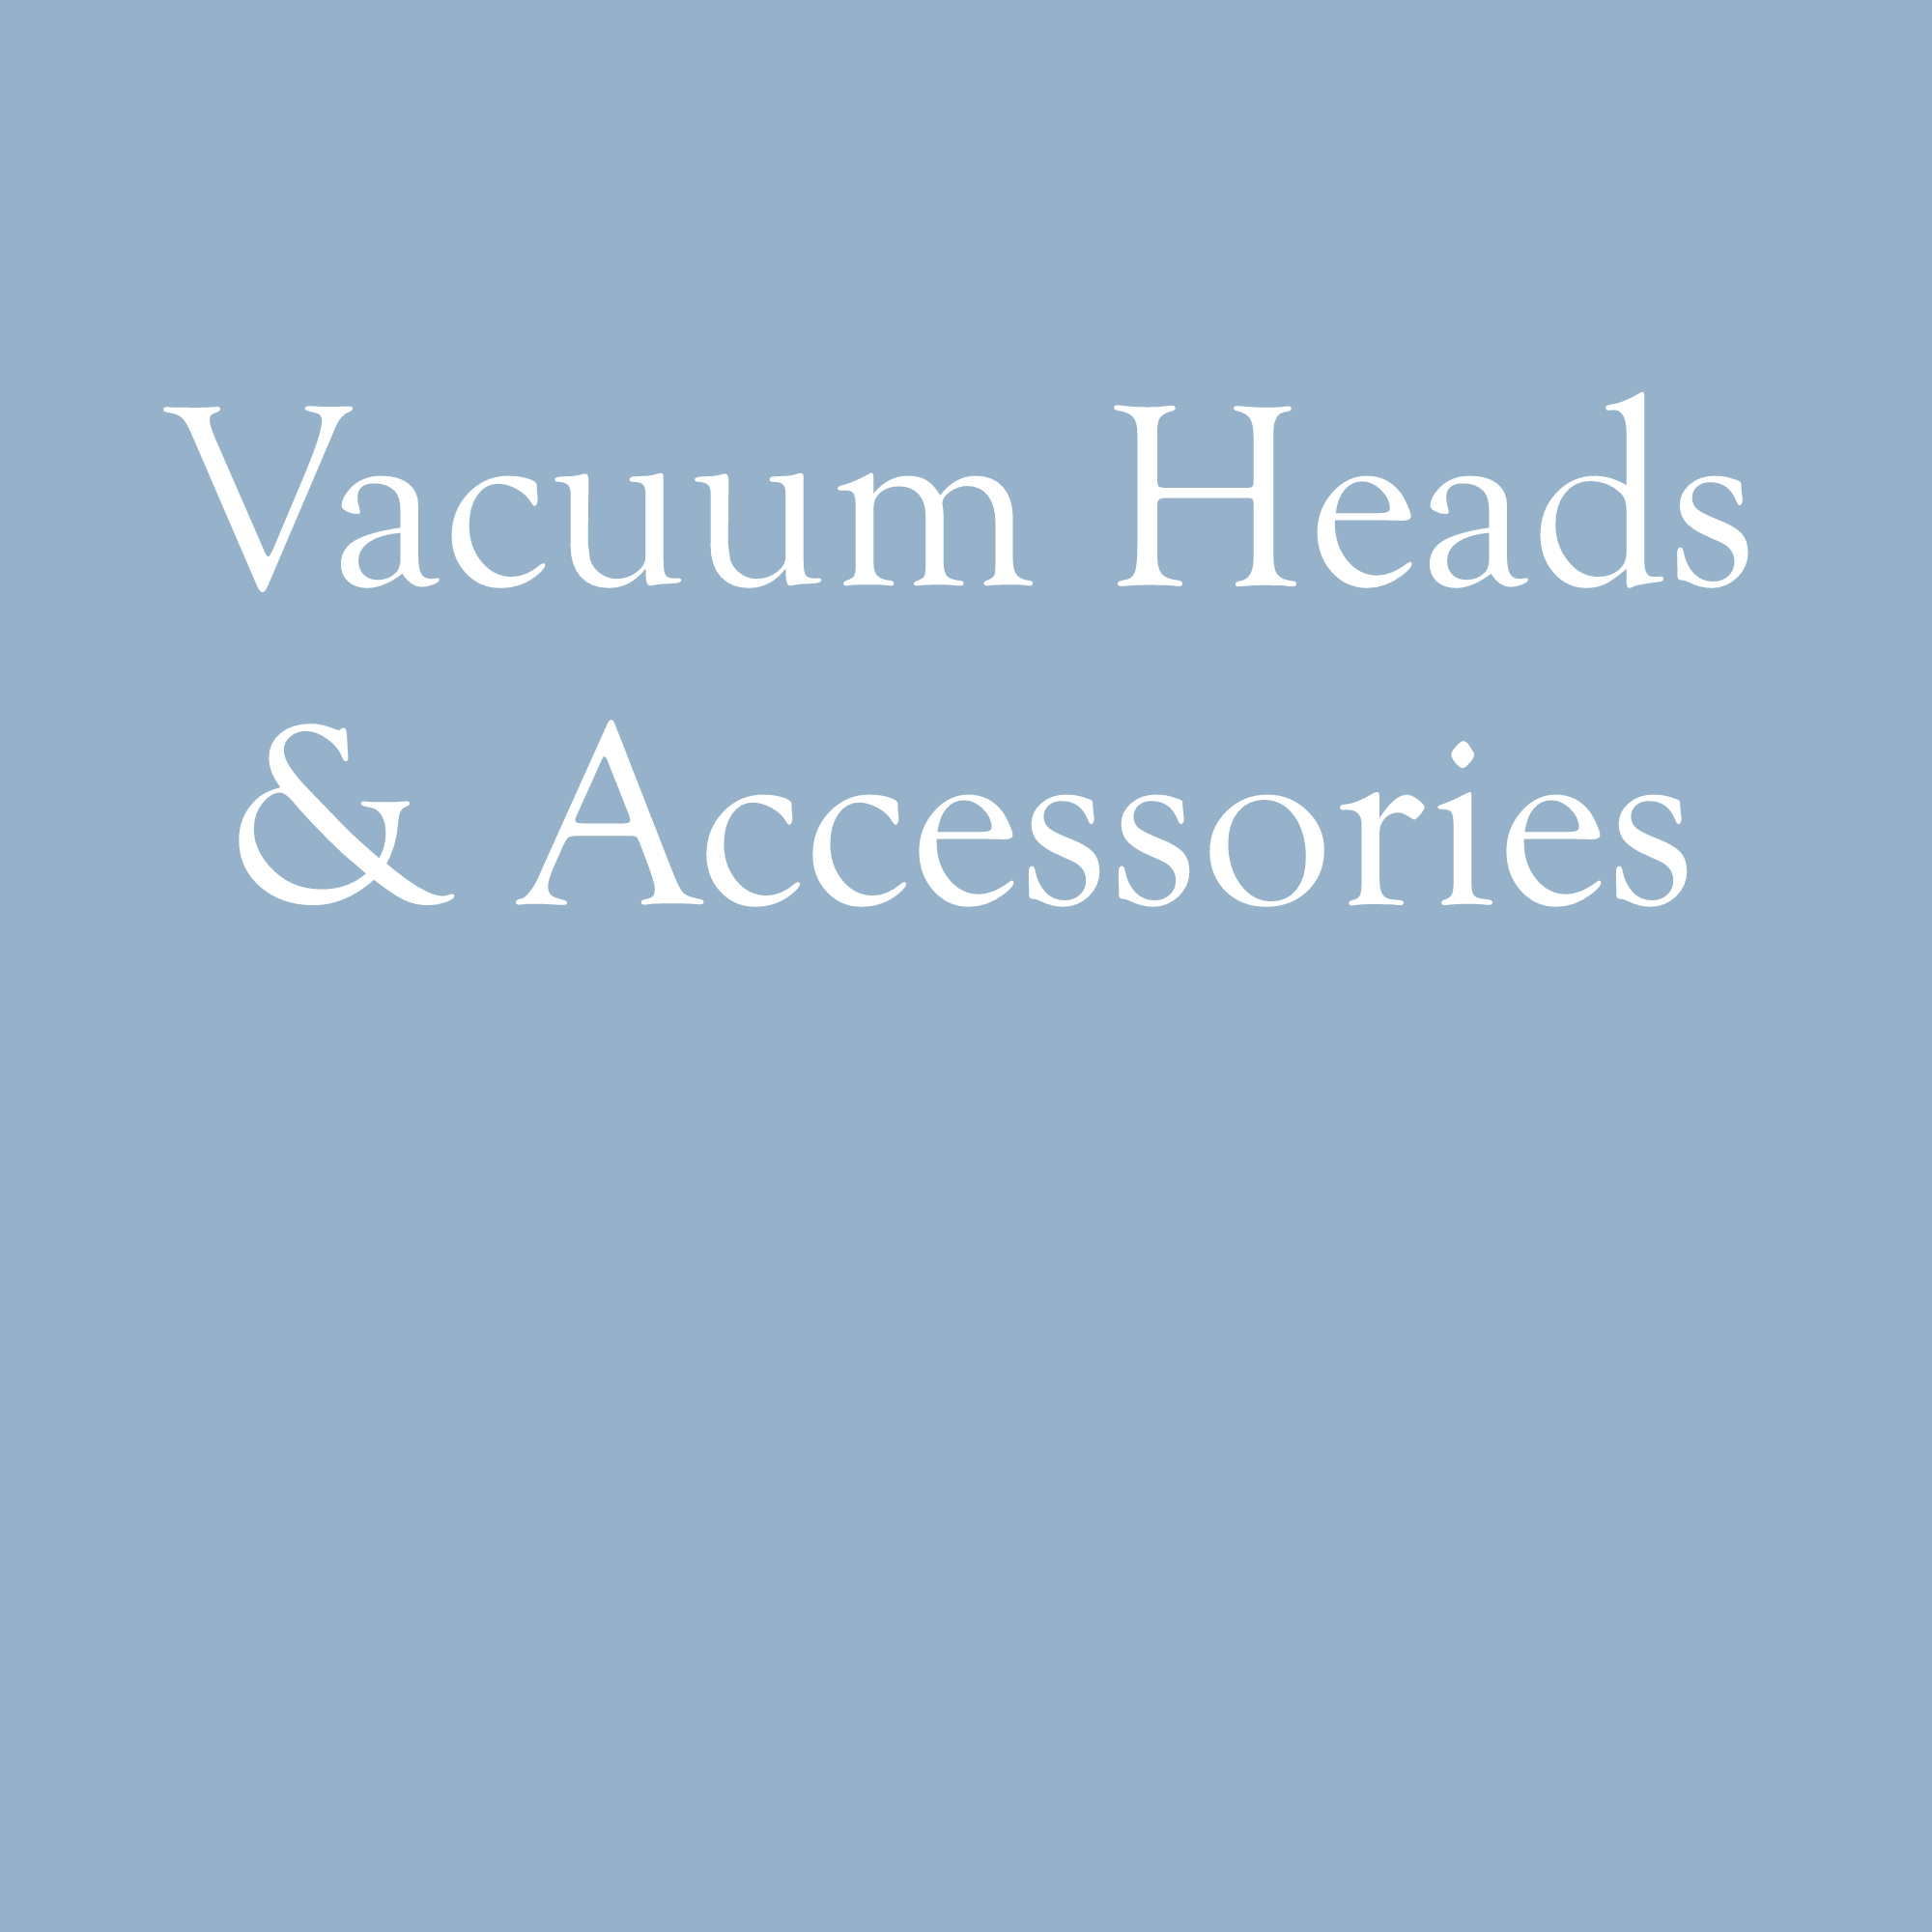 Vacuum Heads and Accessories